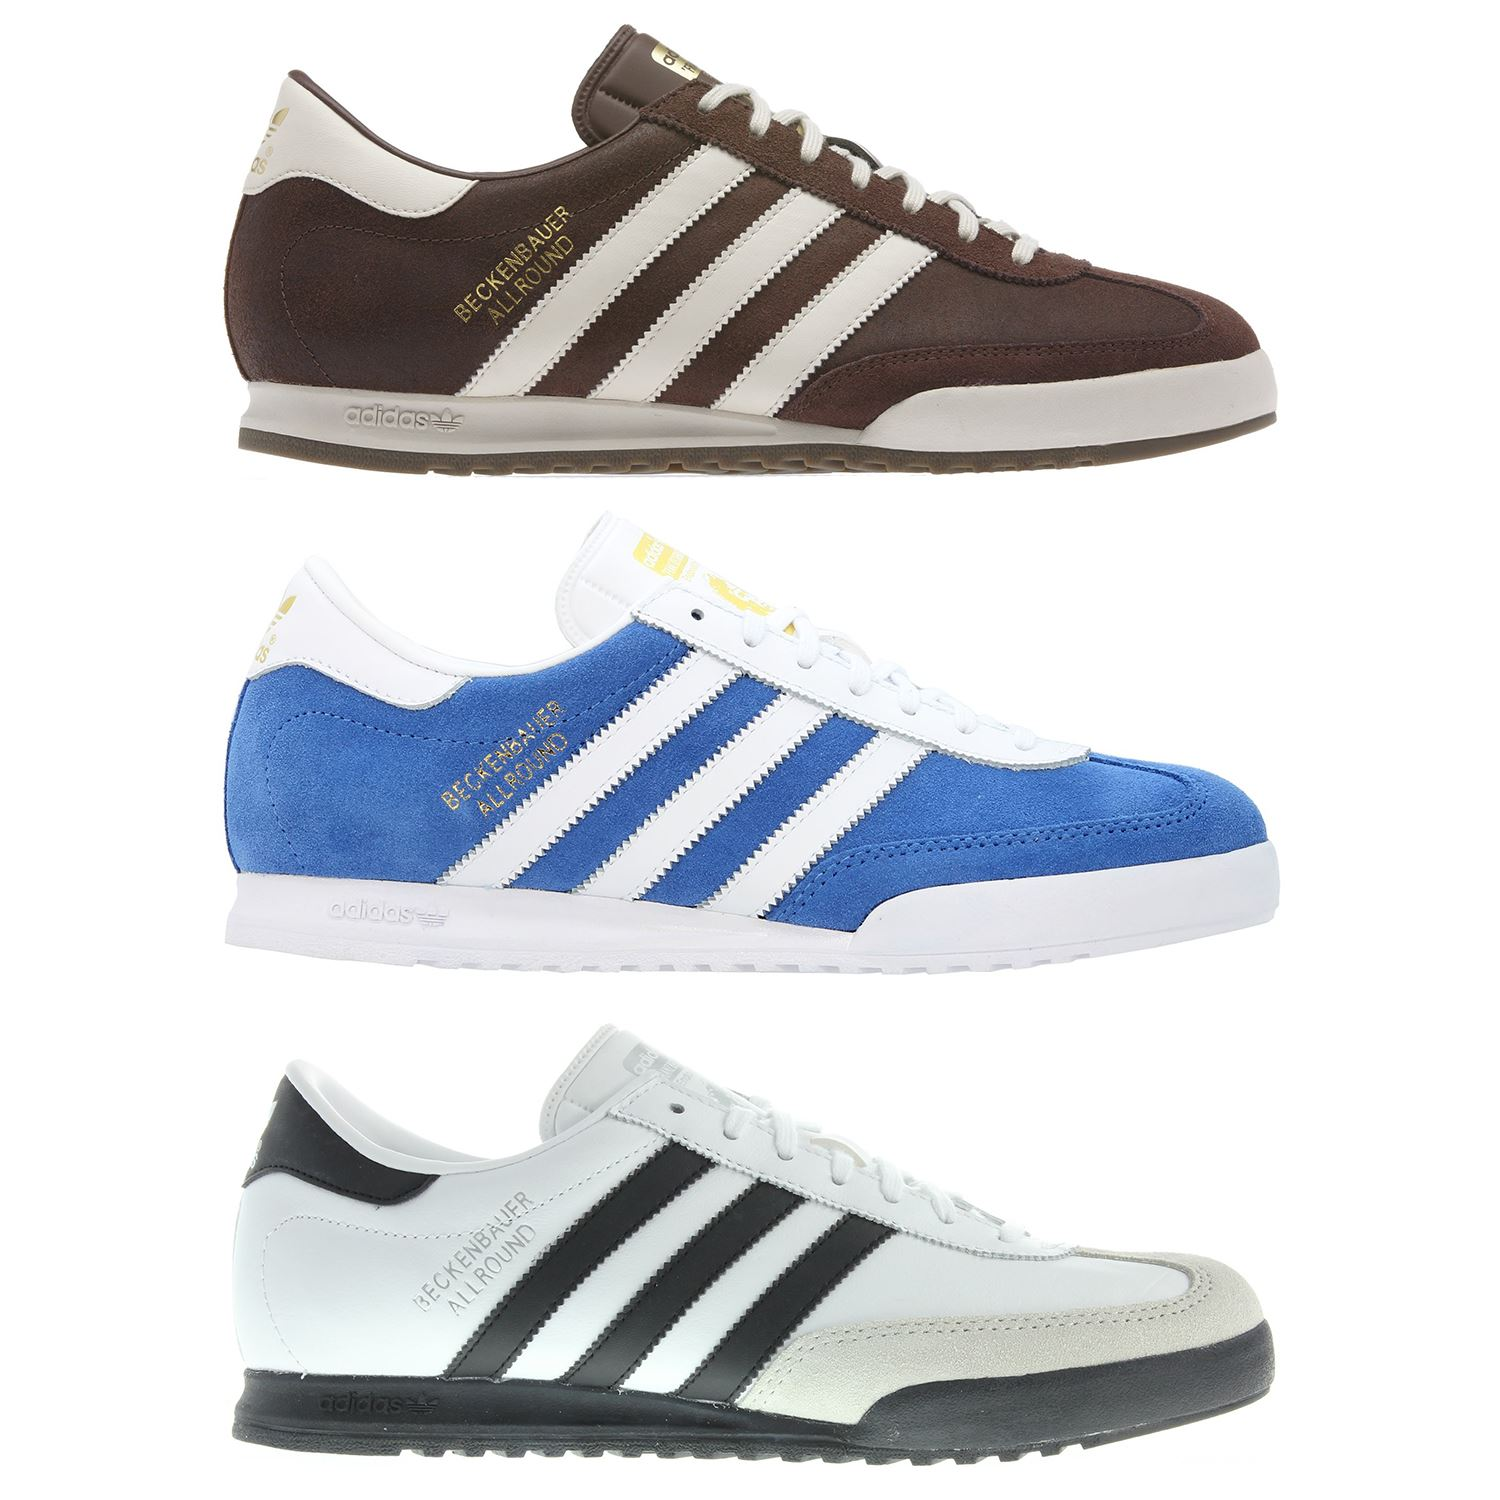 super popular 797bf 1777e Details about ADIDAS ORIGINALS MEN S TRAINERS BECKENBAUER ALL ROUND BLUE  WHITE BLACK BROWN